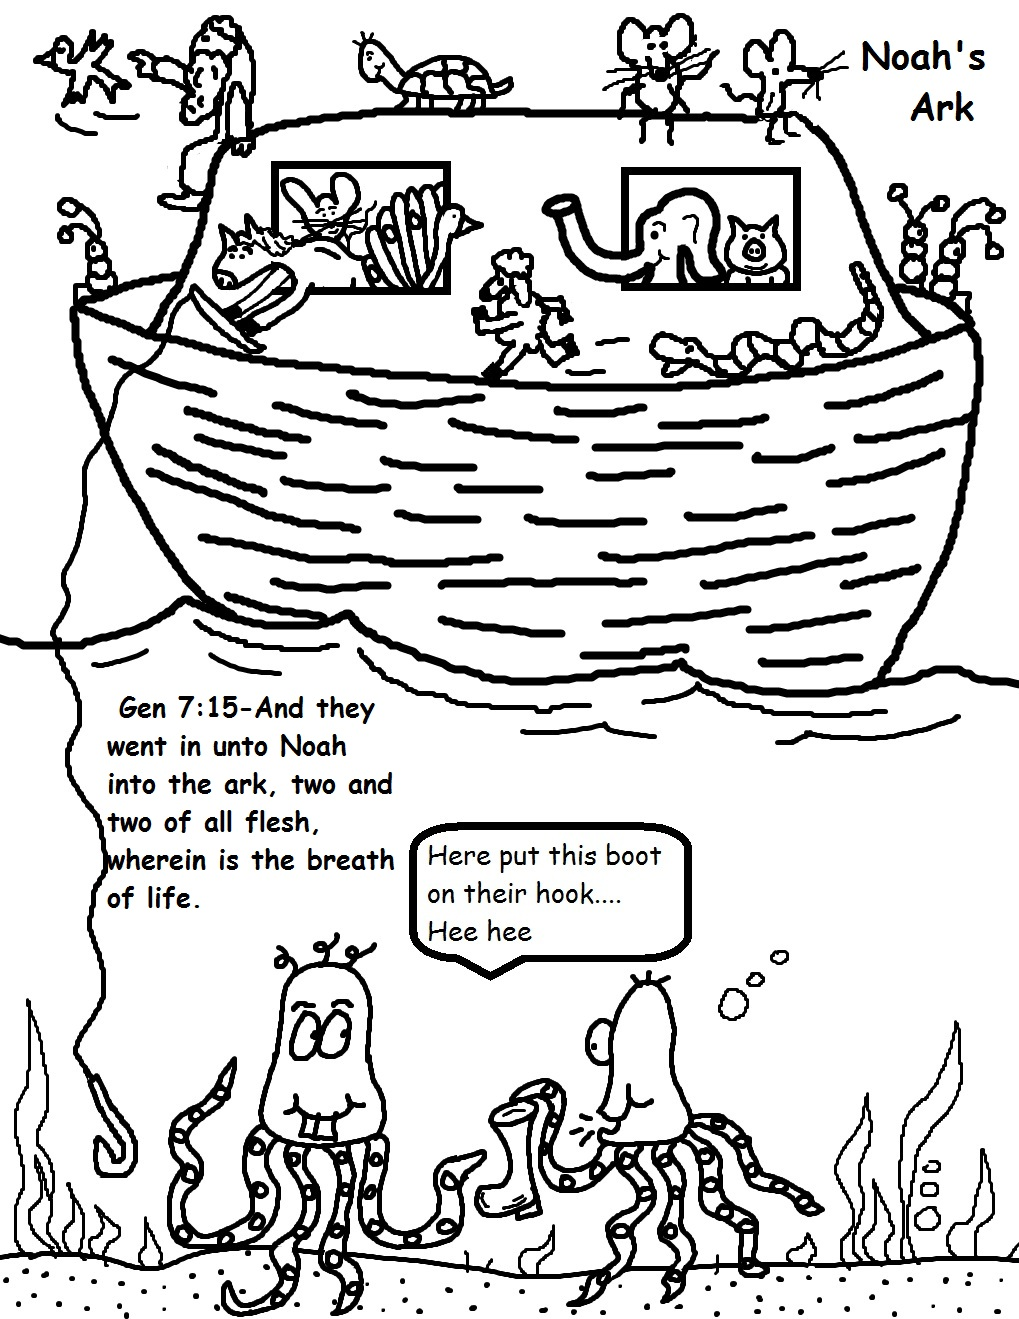 Bible Coloring Pages Noah's Ark - Free Bible Crafts and Bible